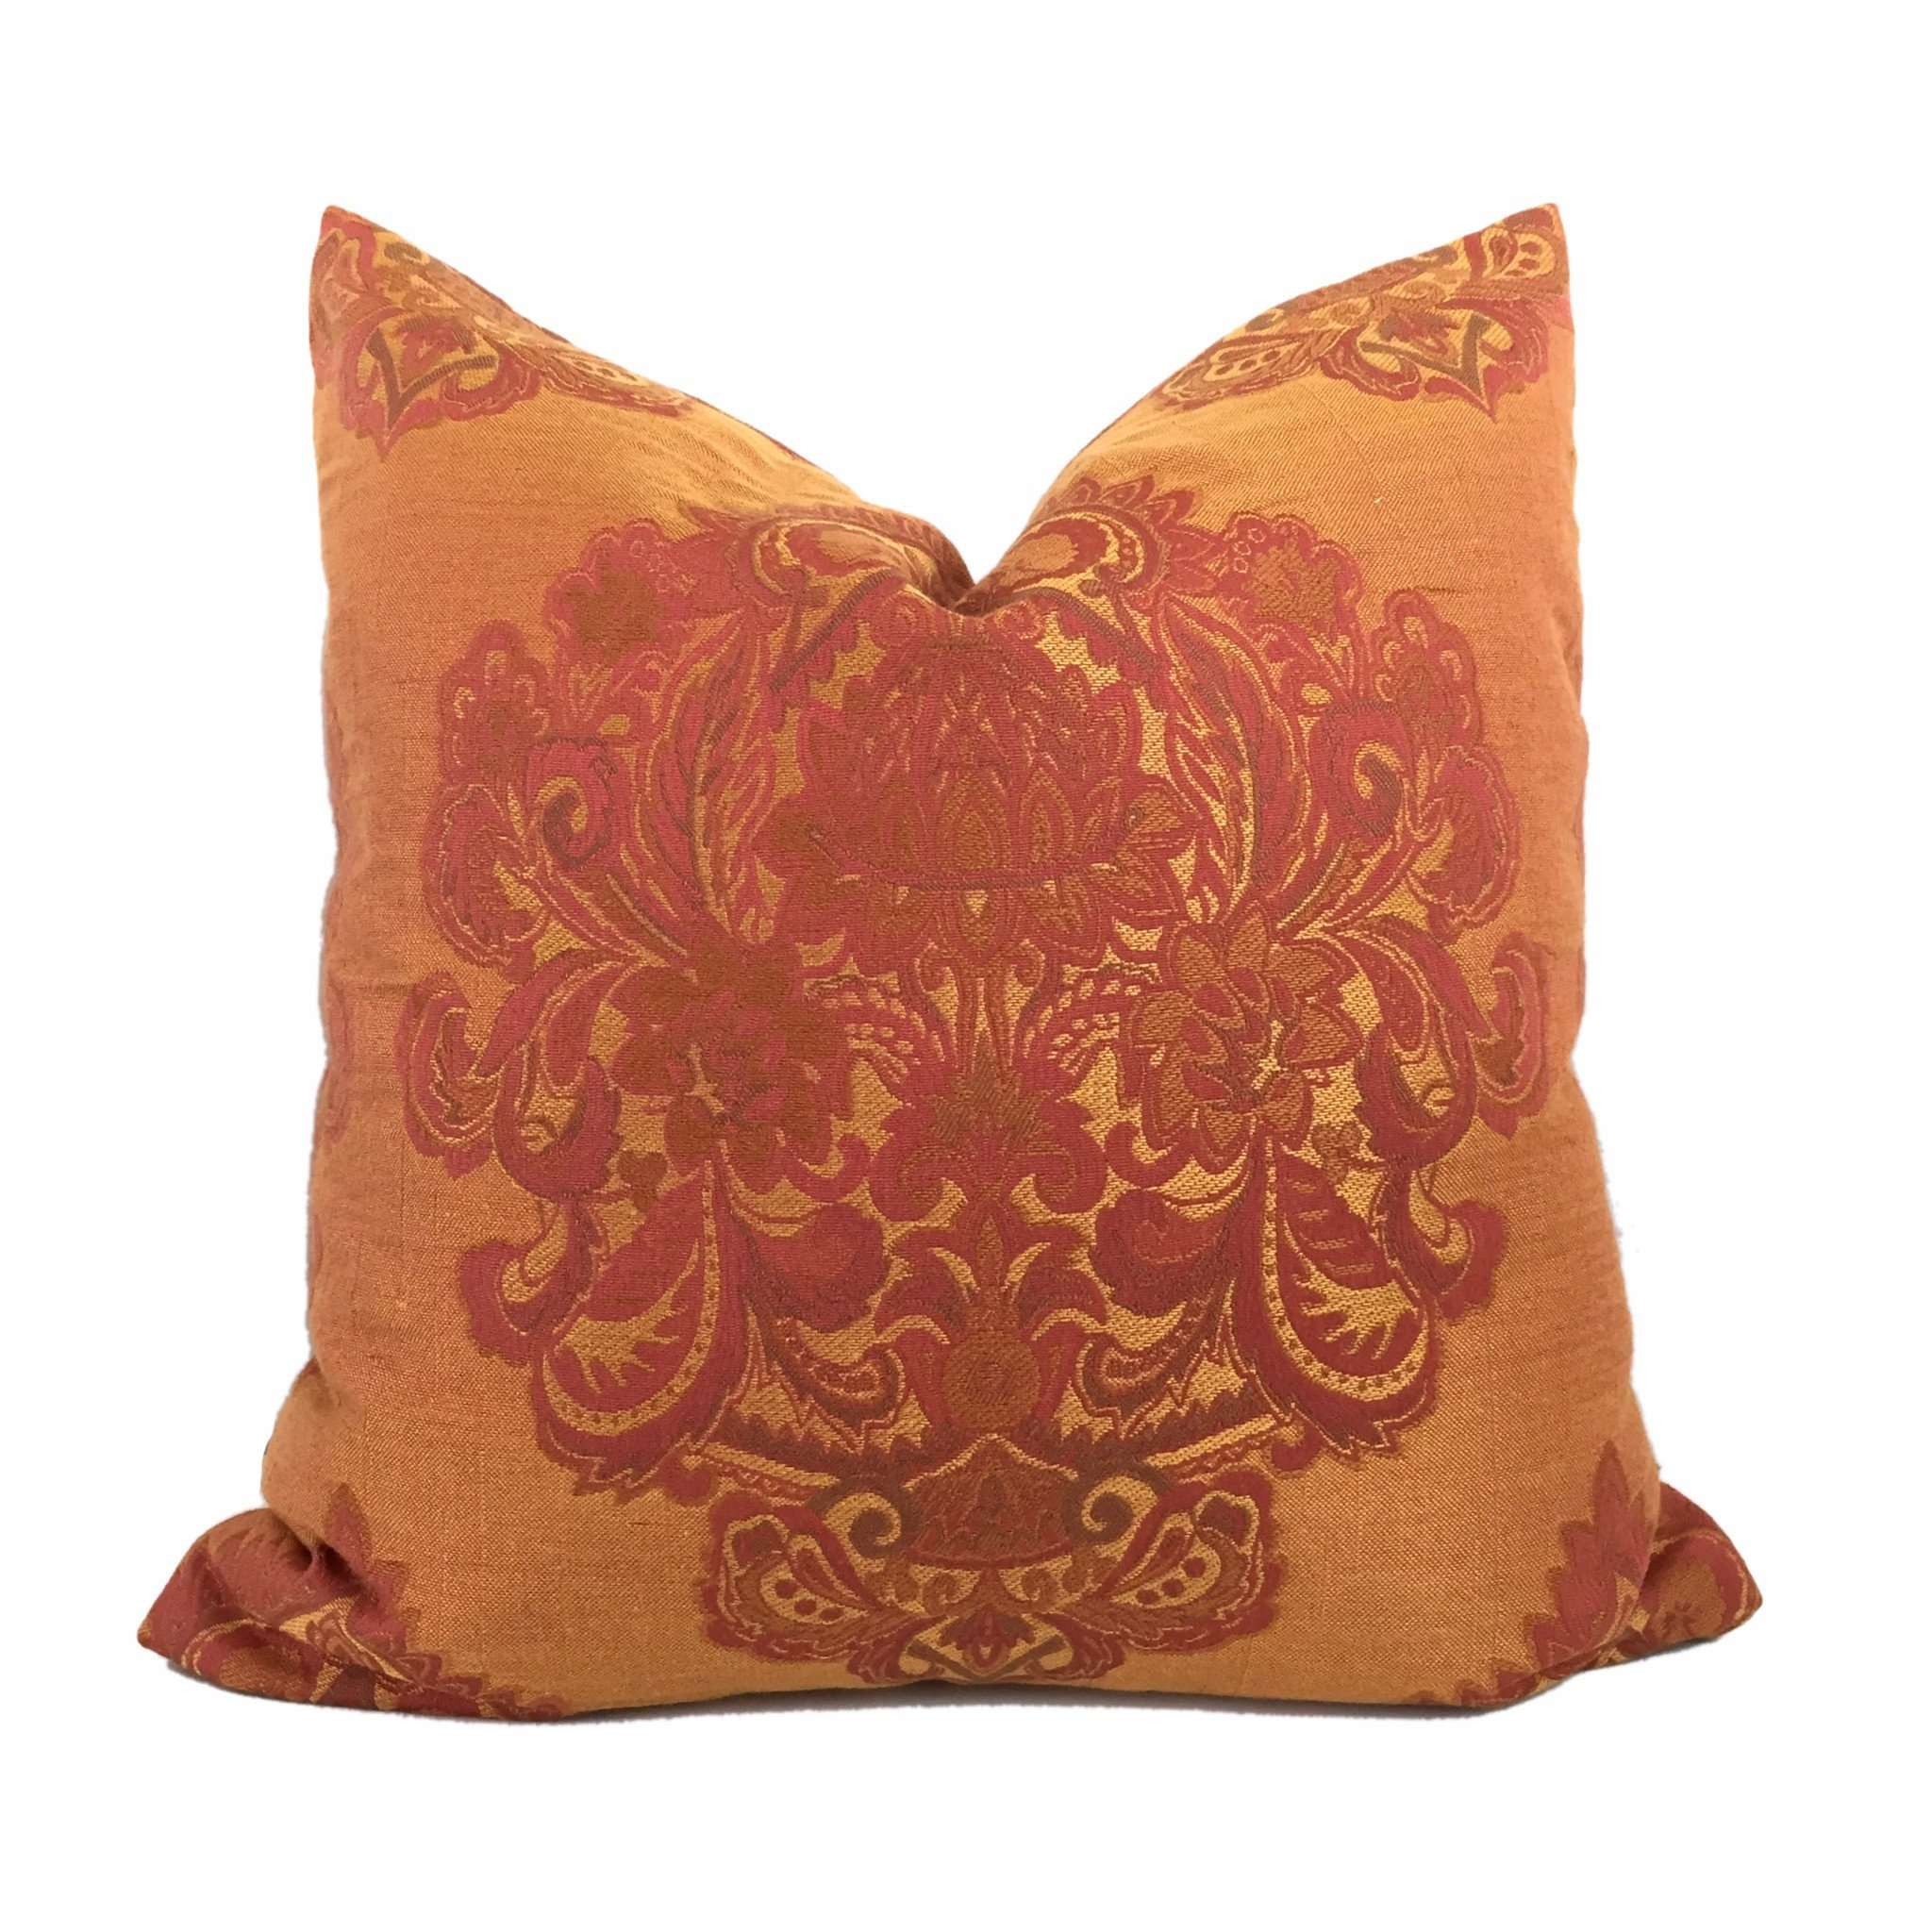 Oriental Paisley Damask Jacquard Medallion Orange Red Gold Pillow Cushion Cover Cushion Pillow Case Euro Sham 16x16 18x18 20x20 22x22 24x24 26x26 28x28 Lumbar Pillow 12x18 12x20 12x24 14x20 16x26 by Aloriam